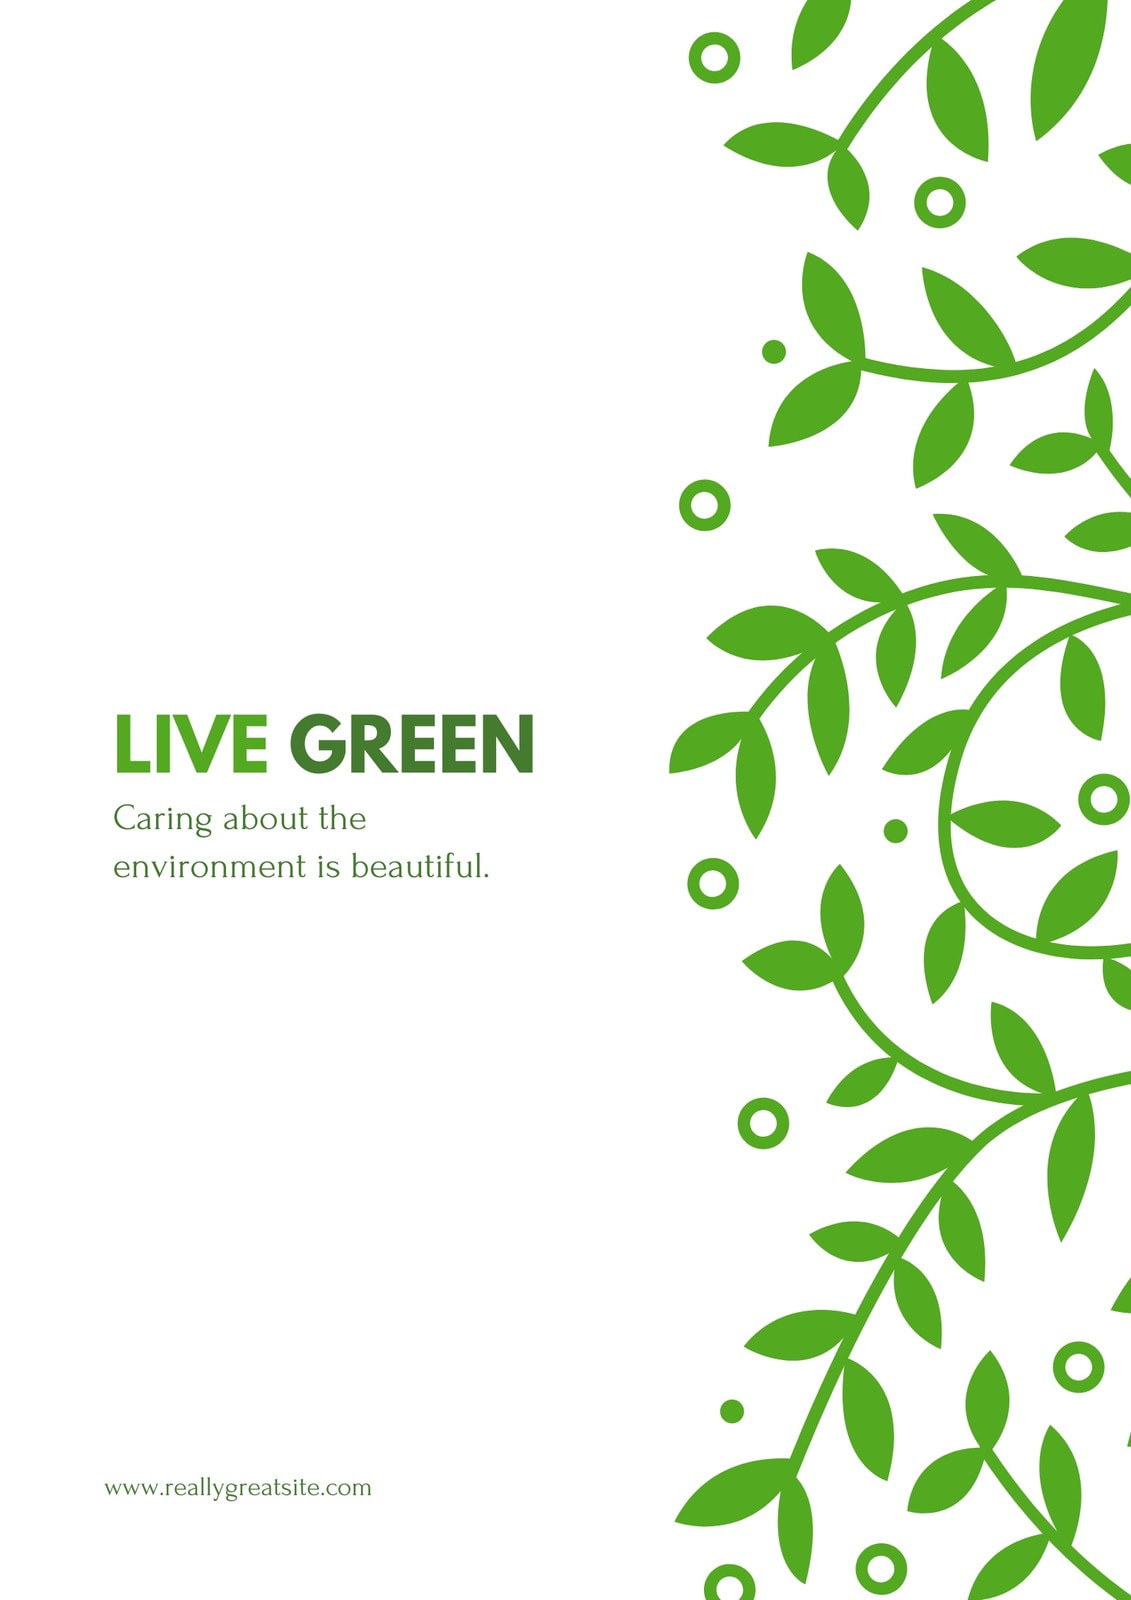 Live Green Campaign Poster